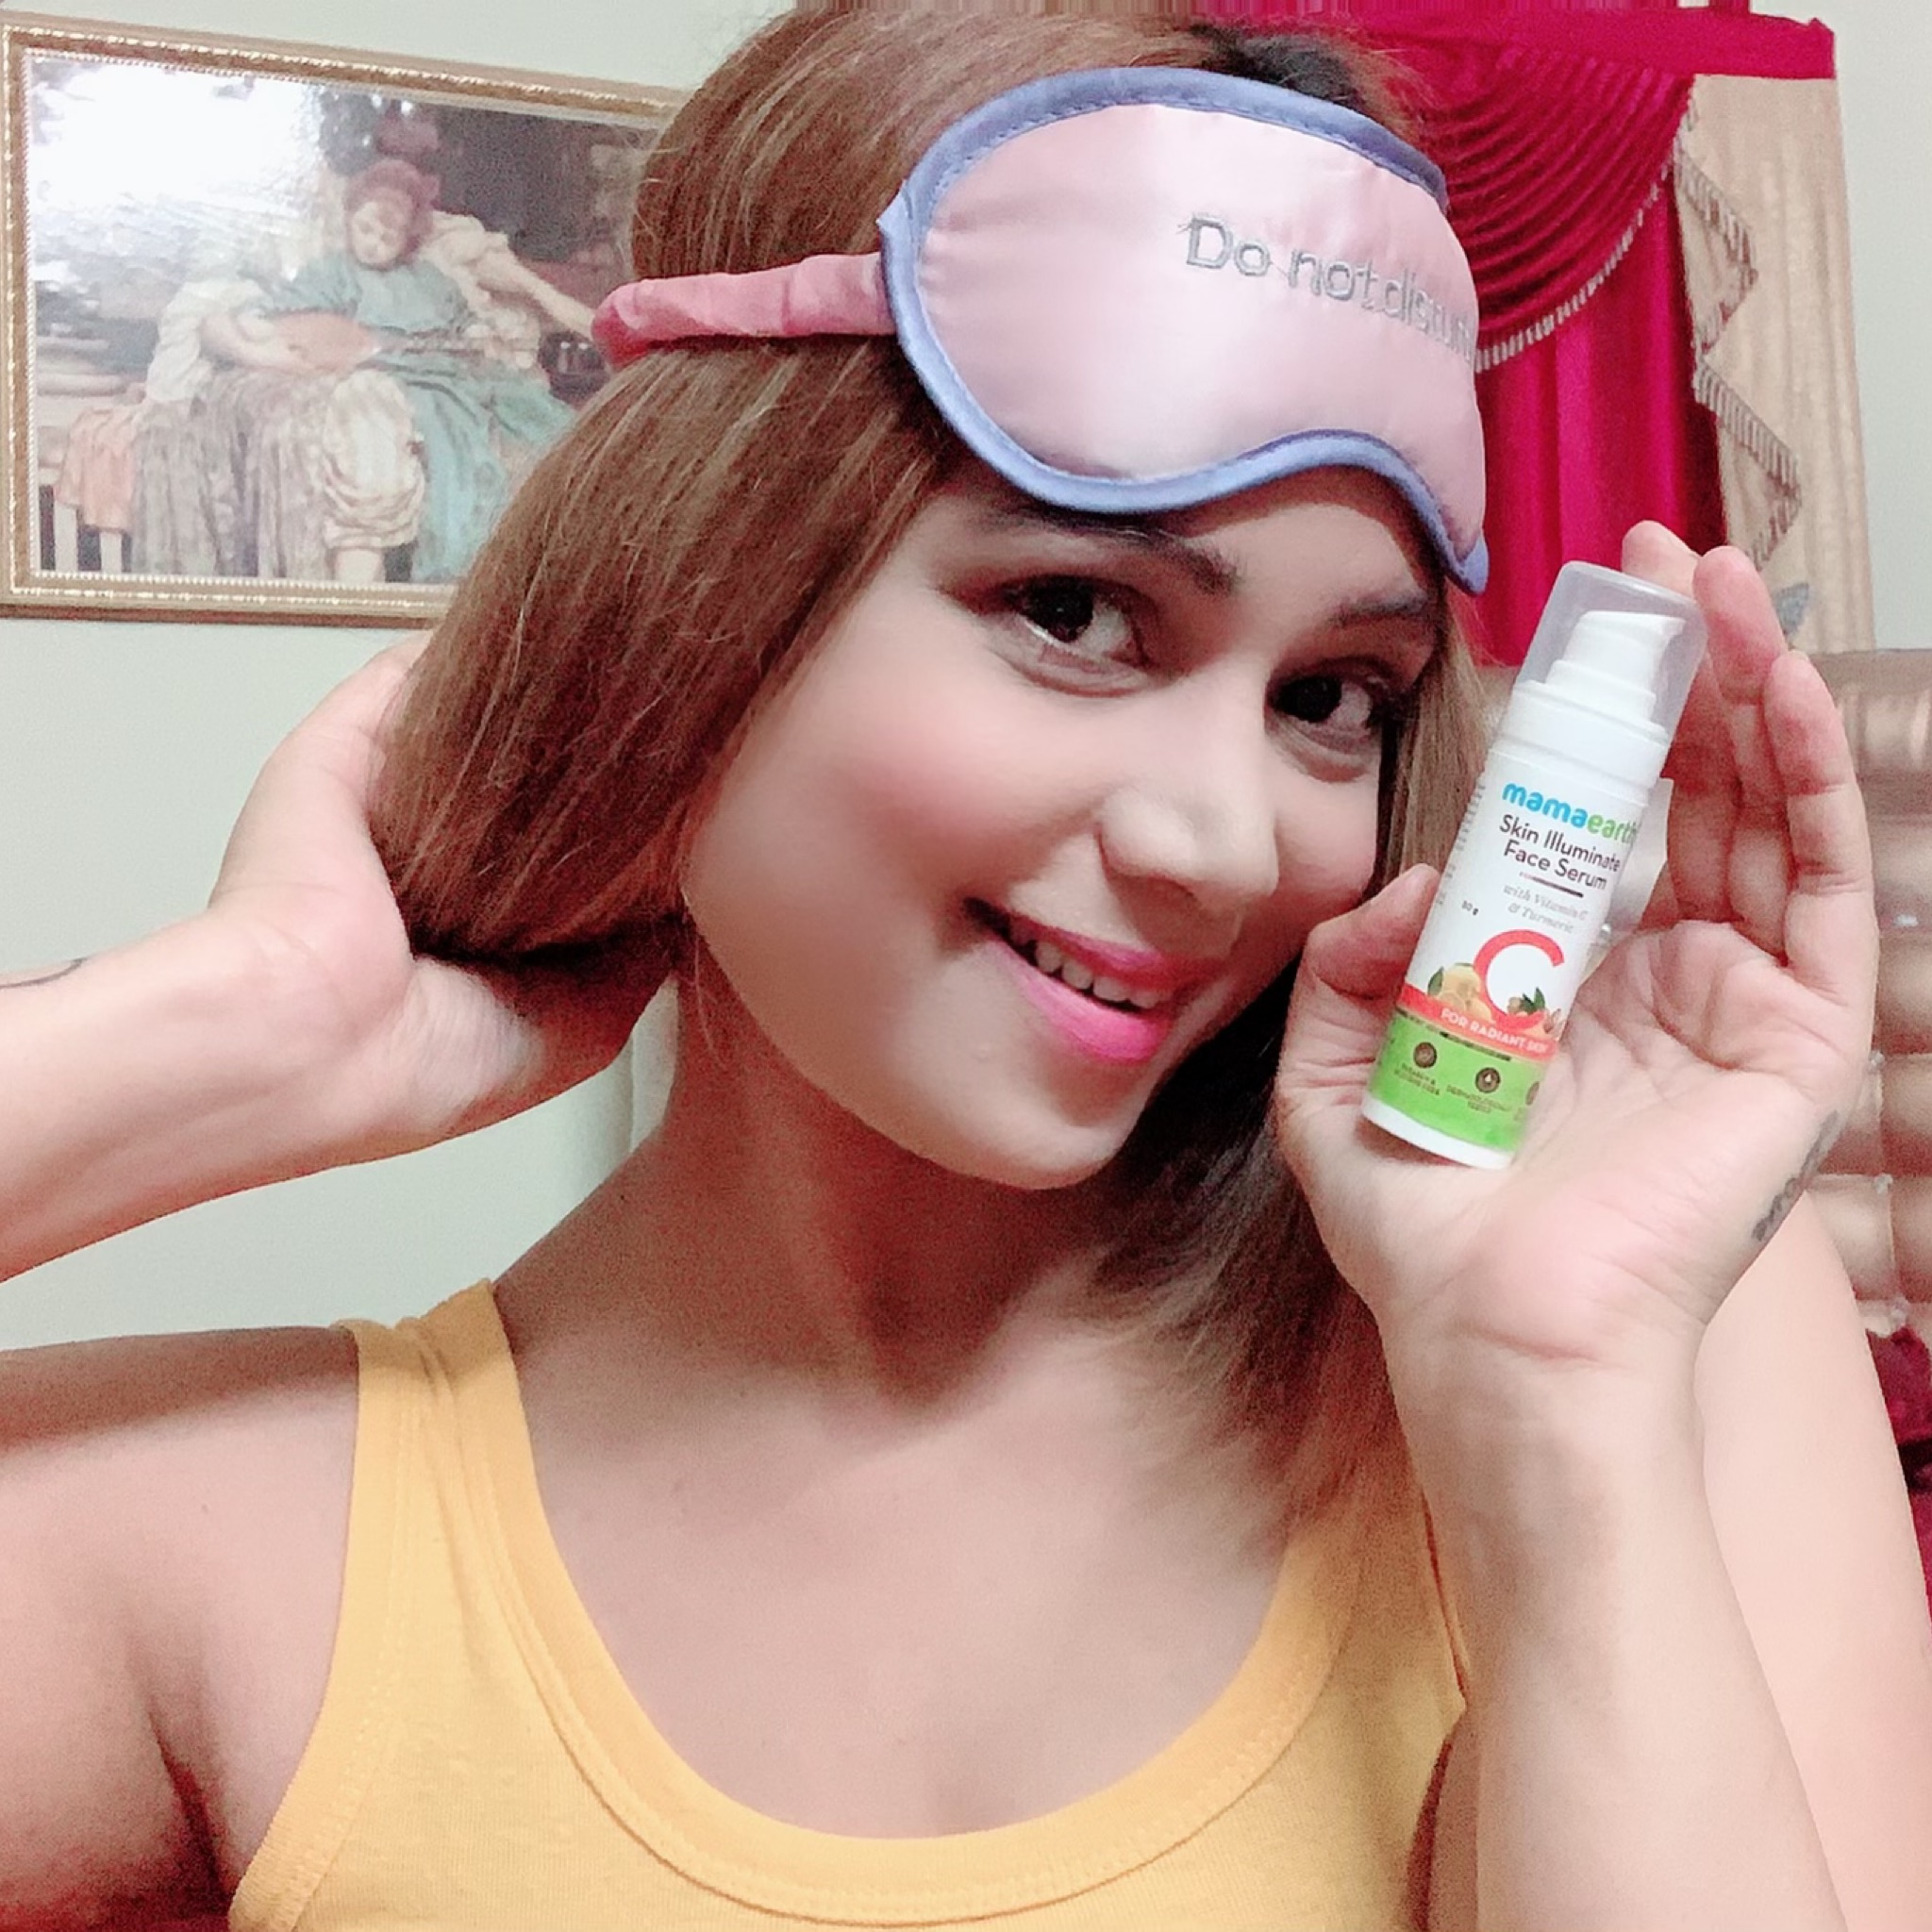 Mamaearth Skin Illuminate Face Serum With Vitamin C & Turmeric pic 1-BEST FACIAL ILLUMINATING SERUM-By mahekhanitha